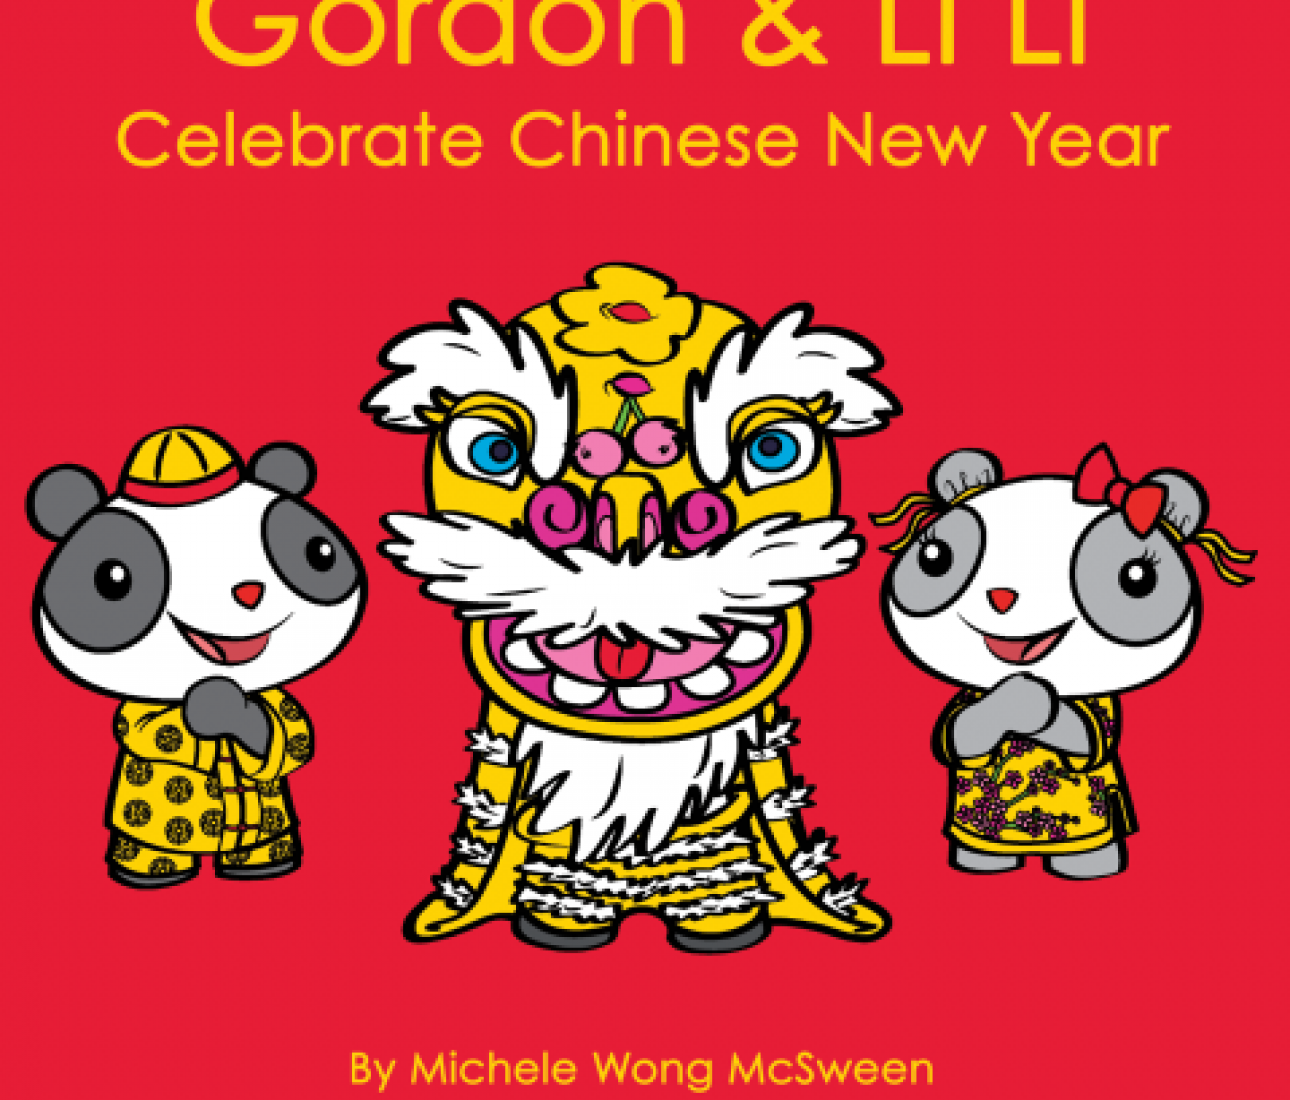 Lunar New Year Celebration — Year of the Rat